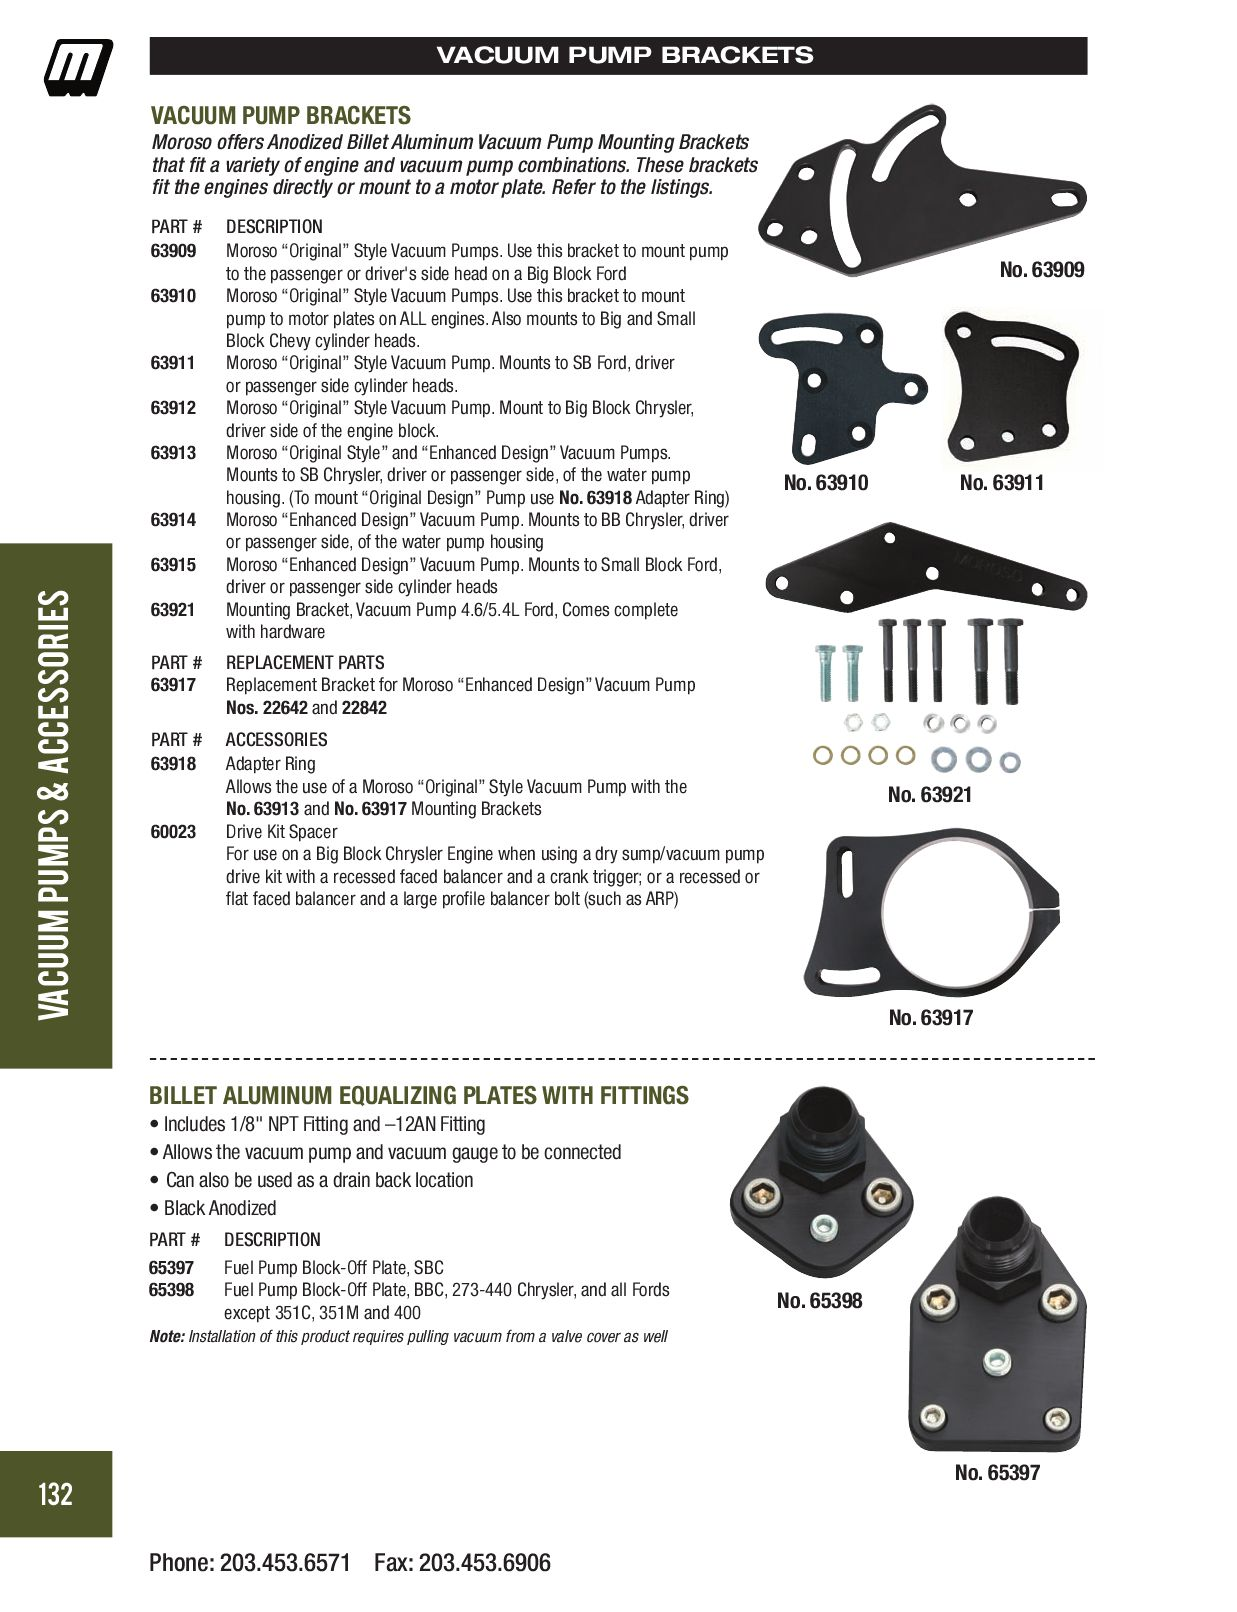 Moroso Product Guide 2010 By Performance Products Issuu Schematic Diagram Was Created For Installing The Vacuum Pump